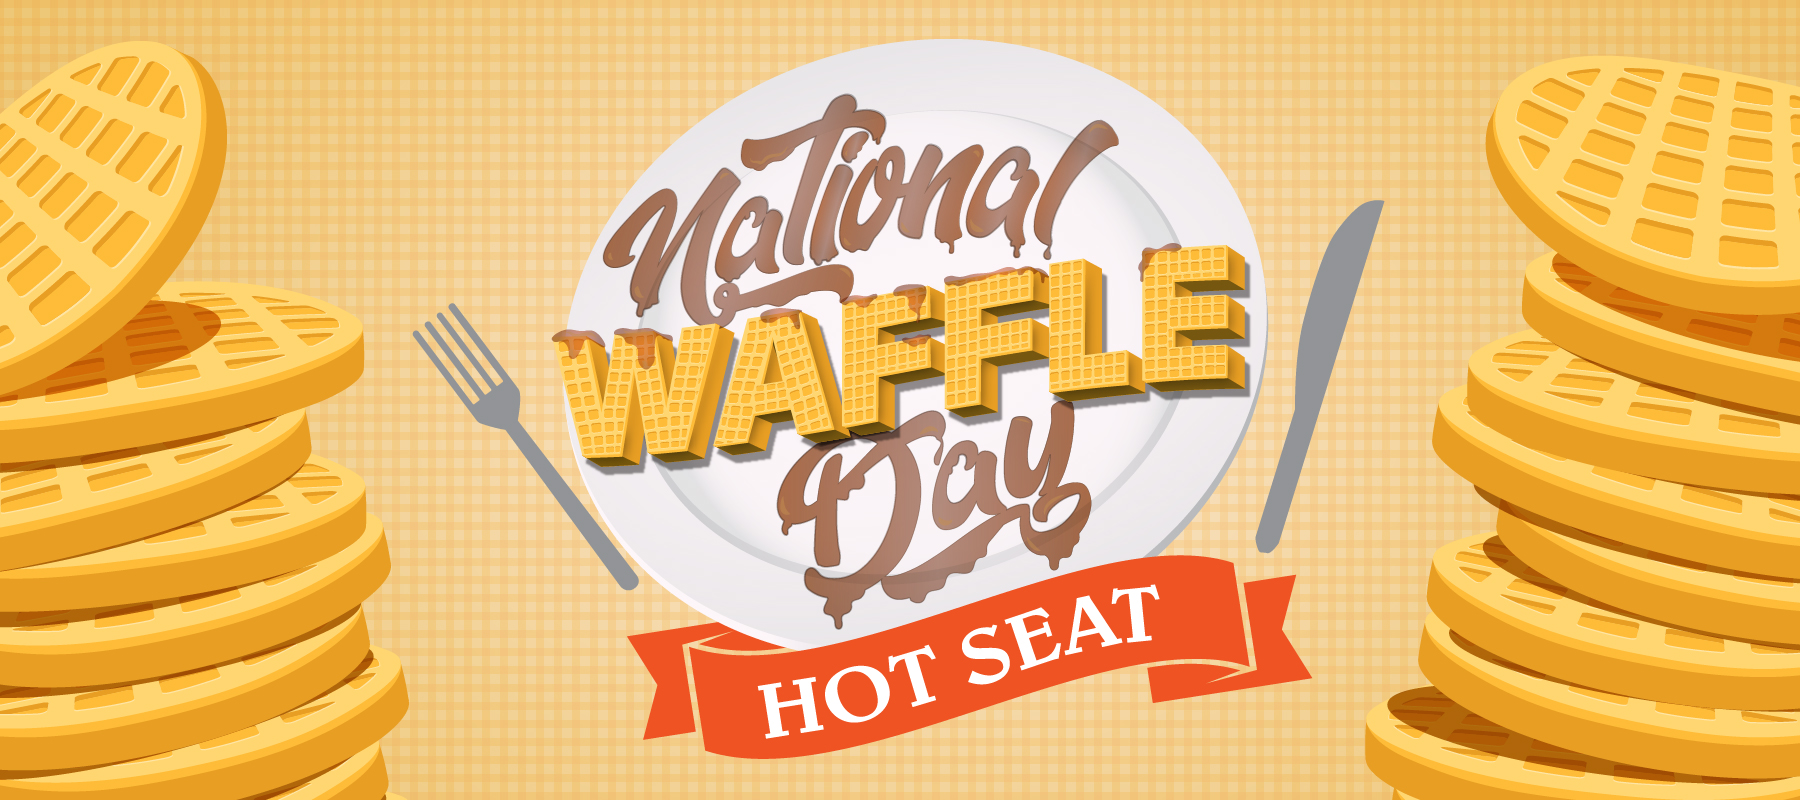 National Waffle Day Hot Seat